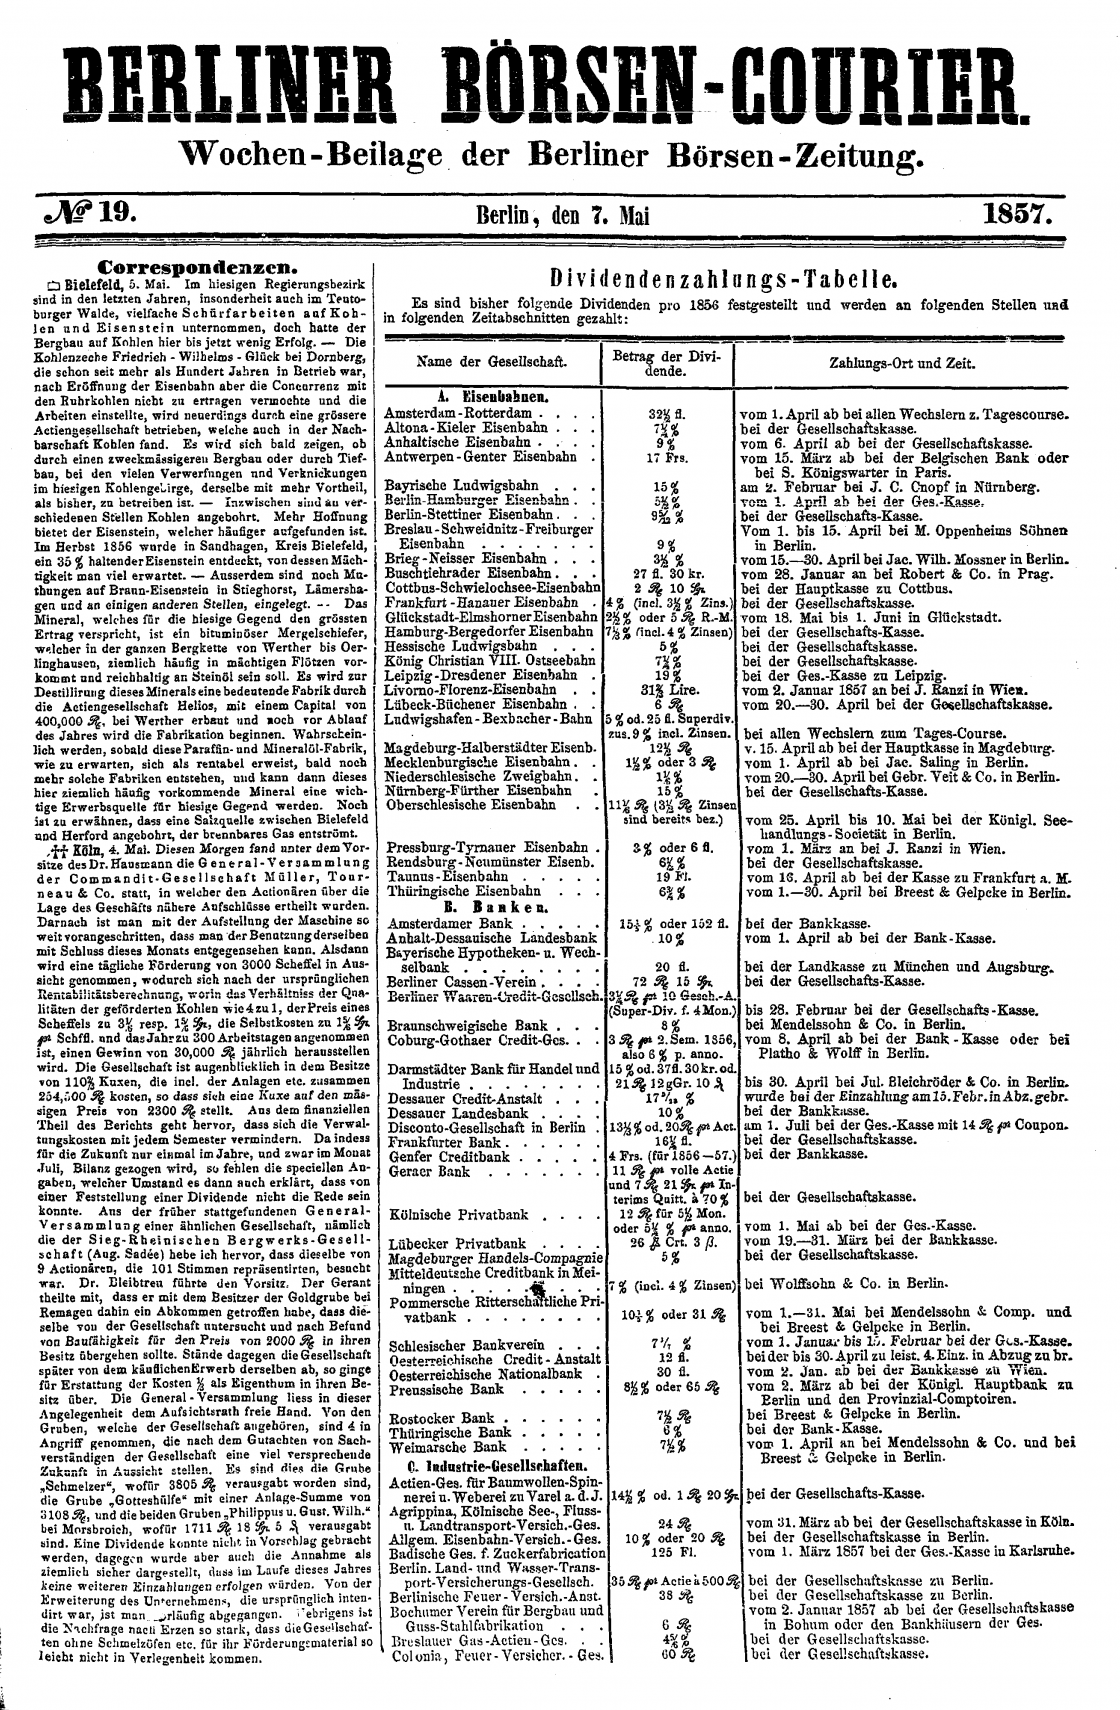 Berliner Borsen Courier Wikipedia